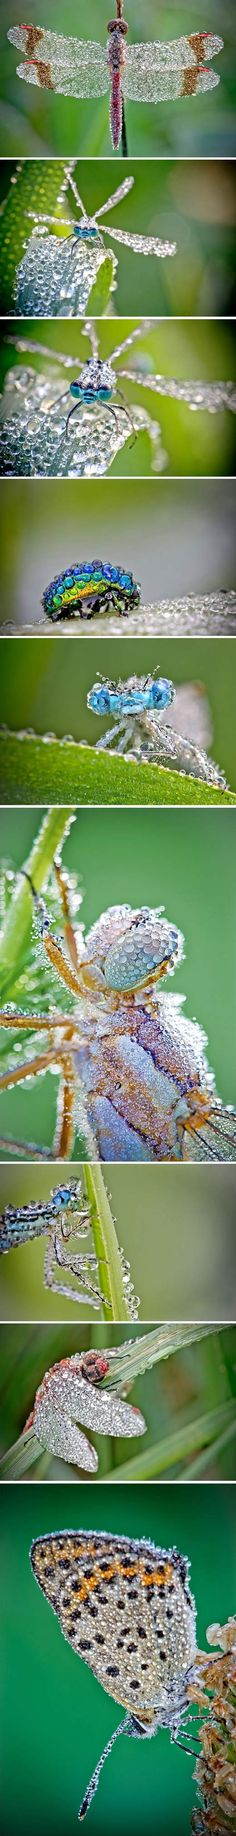 Insects with water drops.